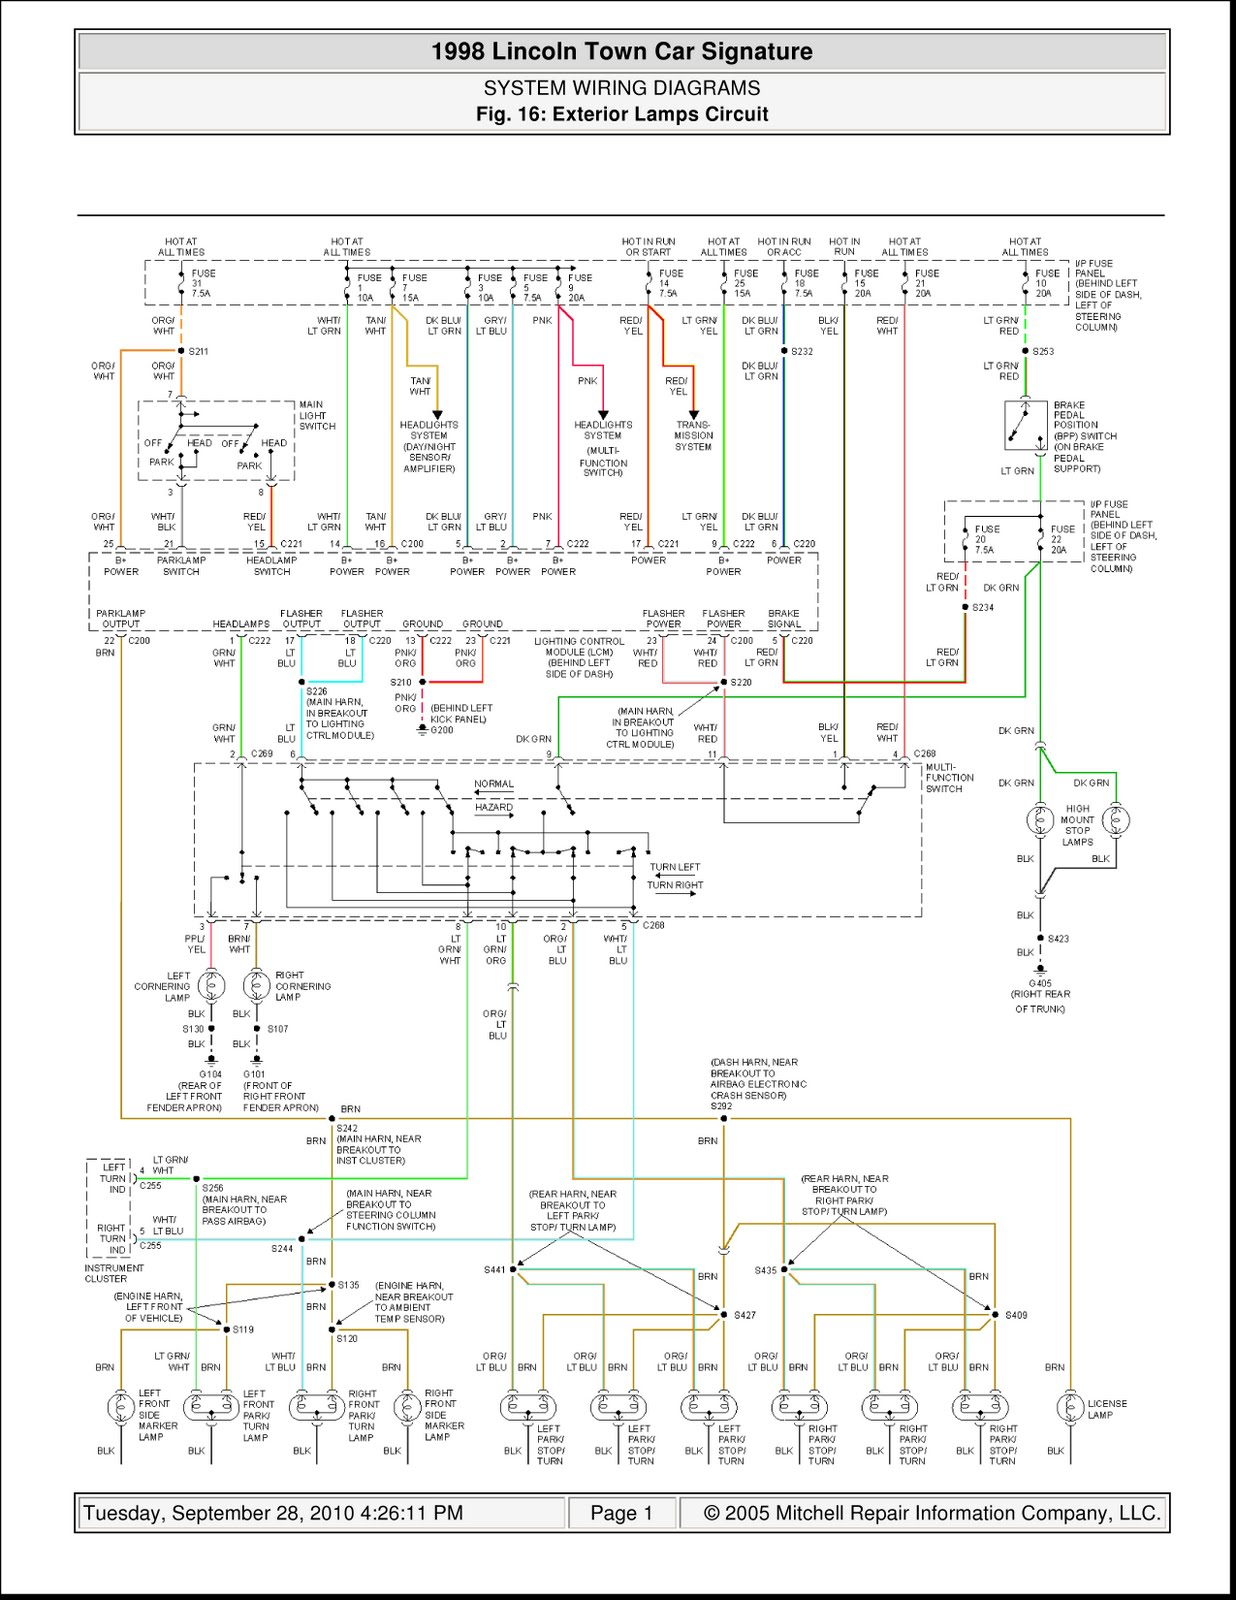 Wiring Diagram 1998 Lincoln Town Car Diagram Base Website Town Car -  VENNDIAGRAMMEME.AISC-NET.ITDiagram Base Website Full Edition - aisc